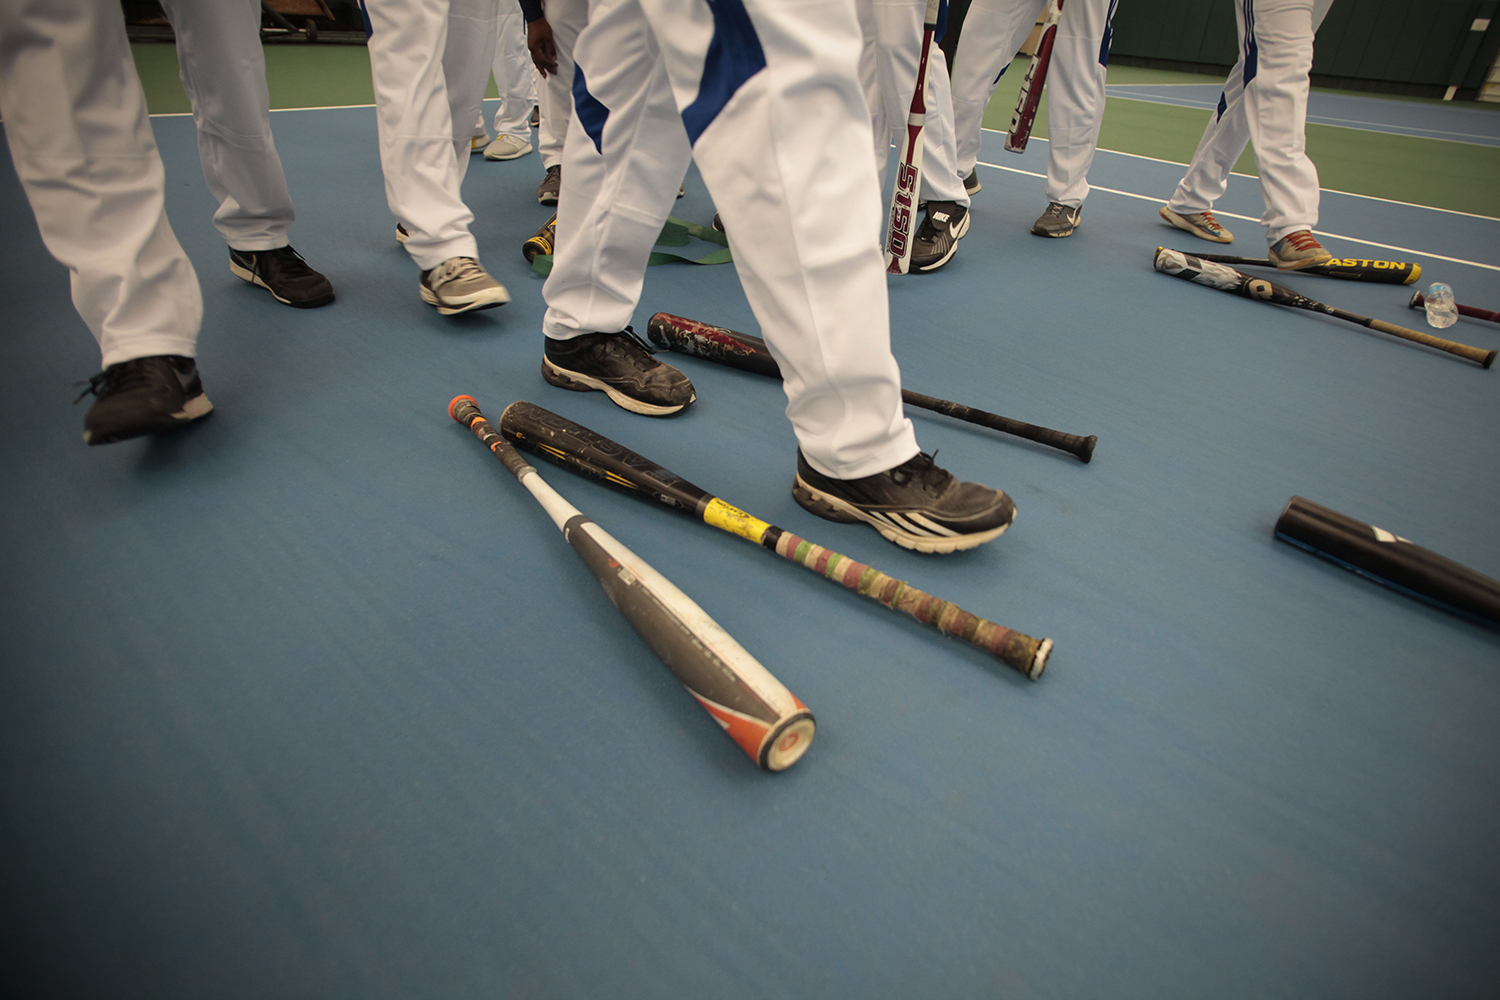 Participants walk over to reclaim their bats before the Muscle Milk Heavy Hitter Home Run Derby on Thur., July 17, 2014 at Wayne State University in Detroit. Tim Galloway/Special for DFP